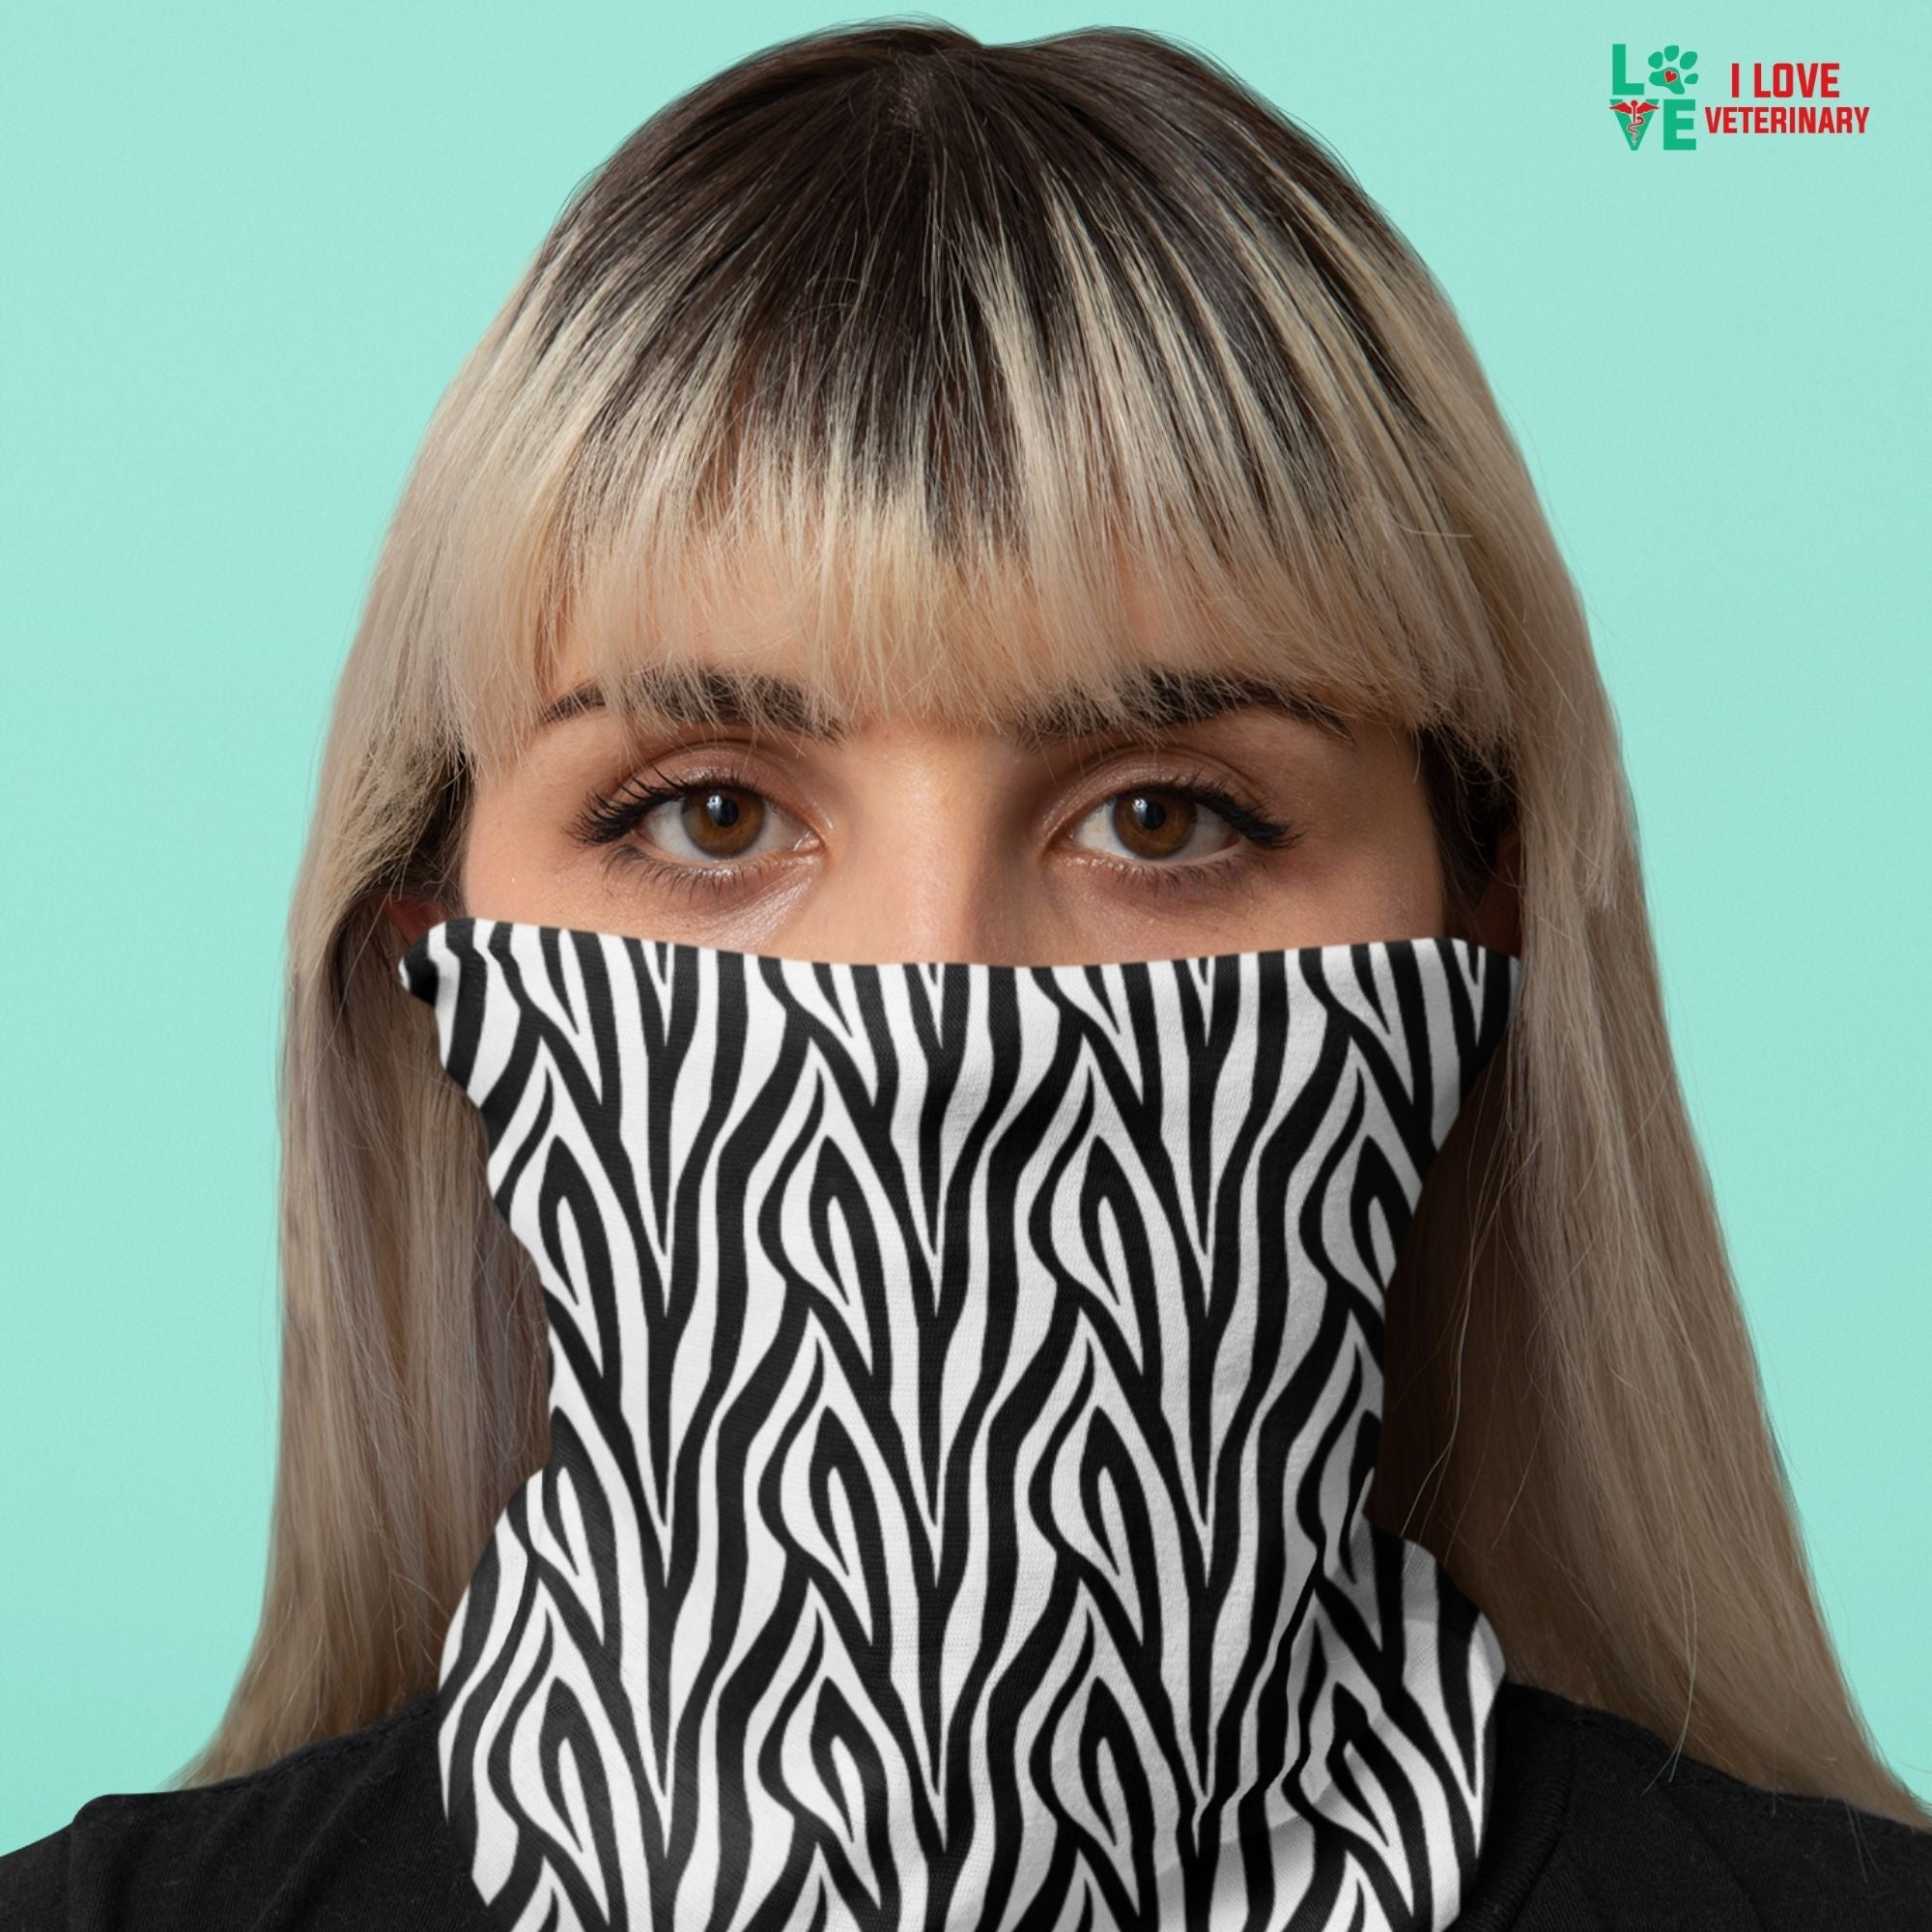 Zebra skin pattern Sublimation Neck Gaiter-Accessories-I love Veterinary